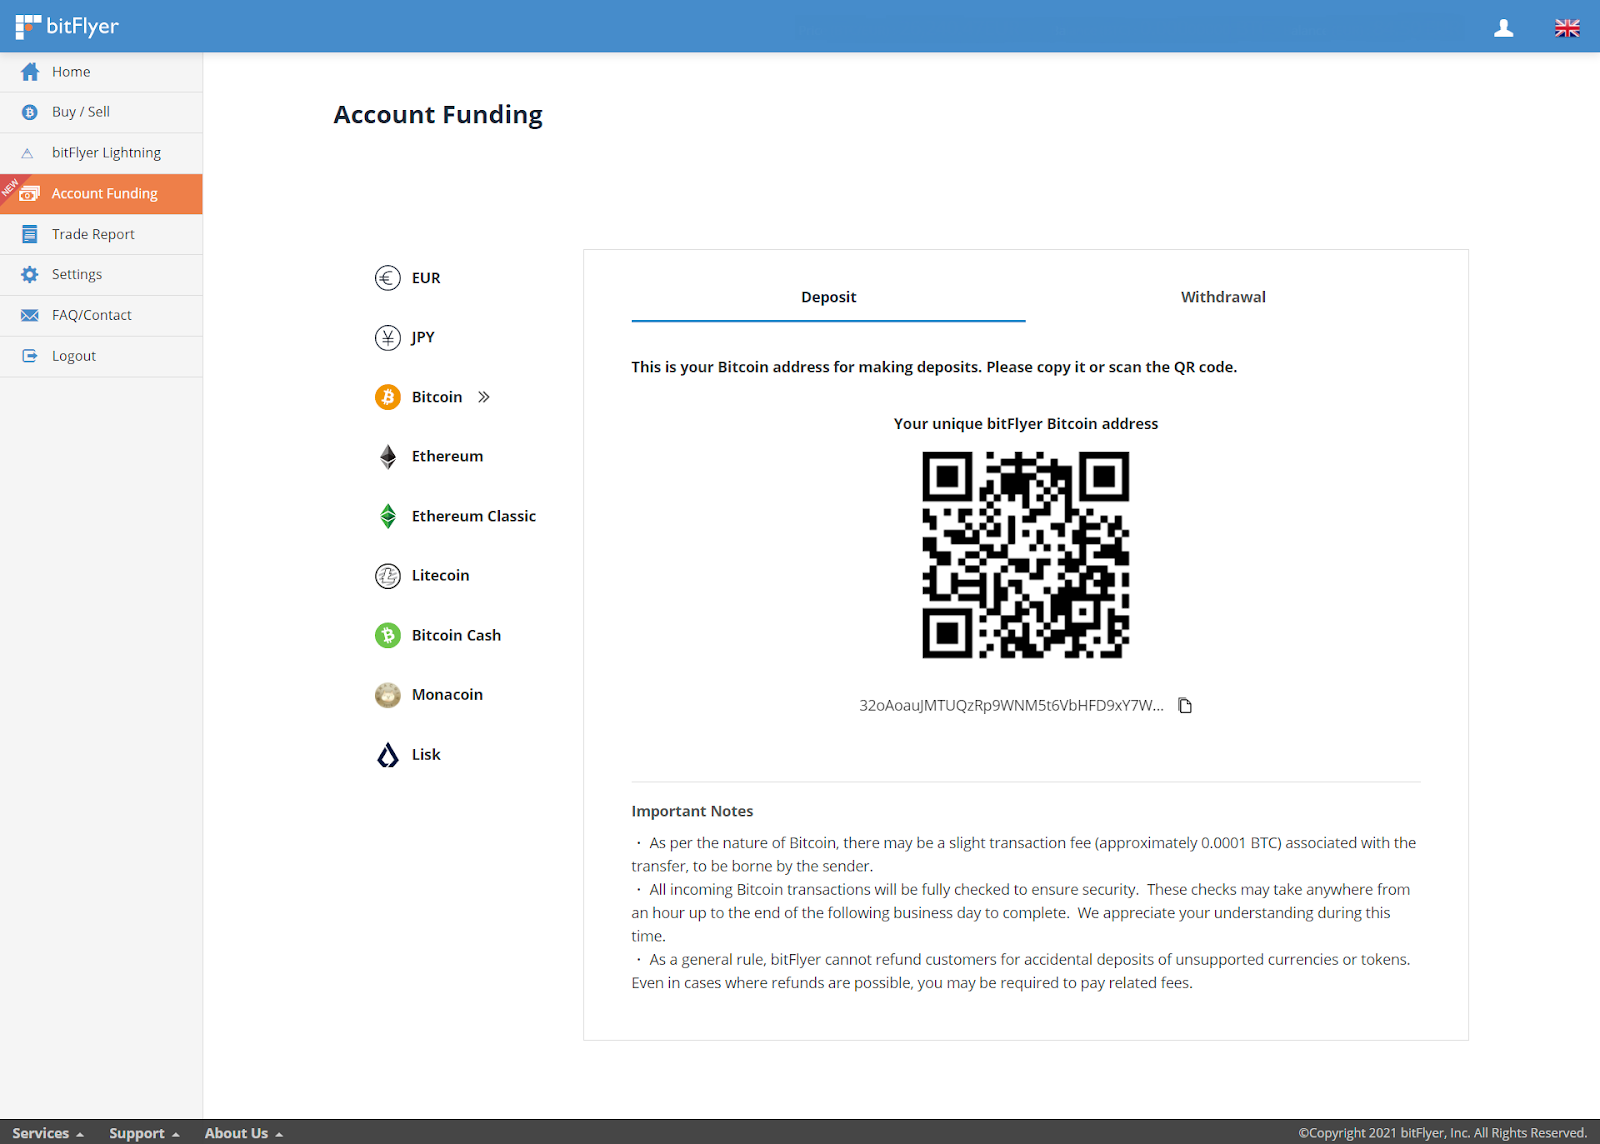 Our new Funding Page is here!